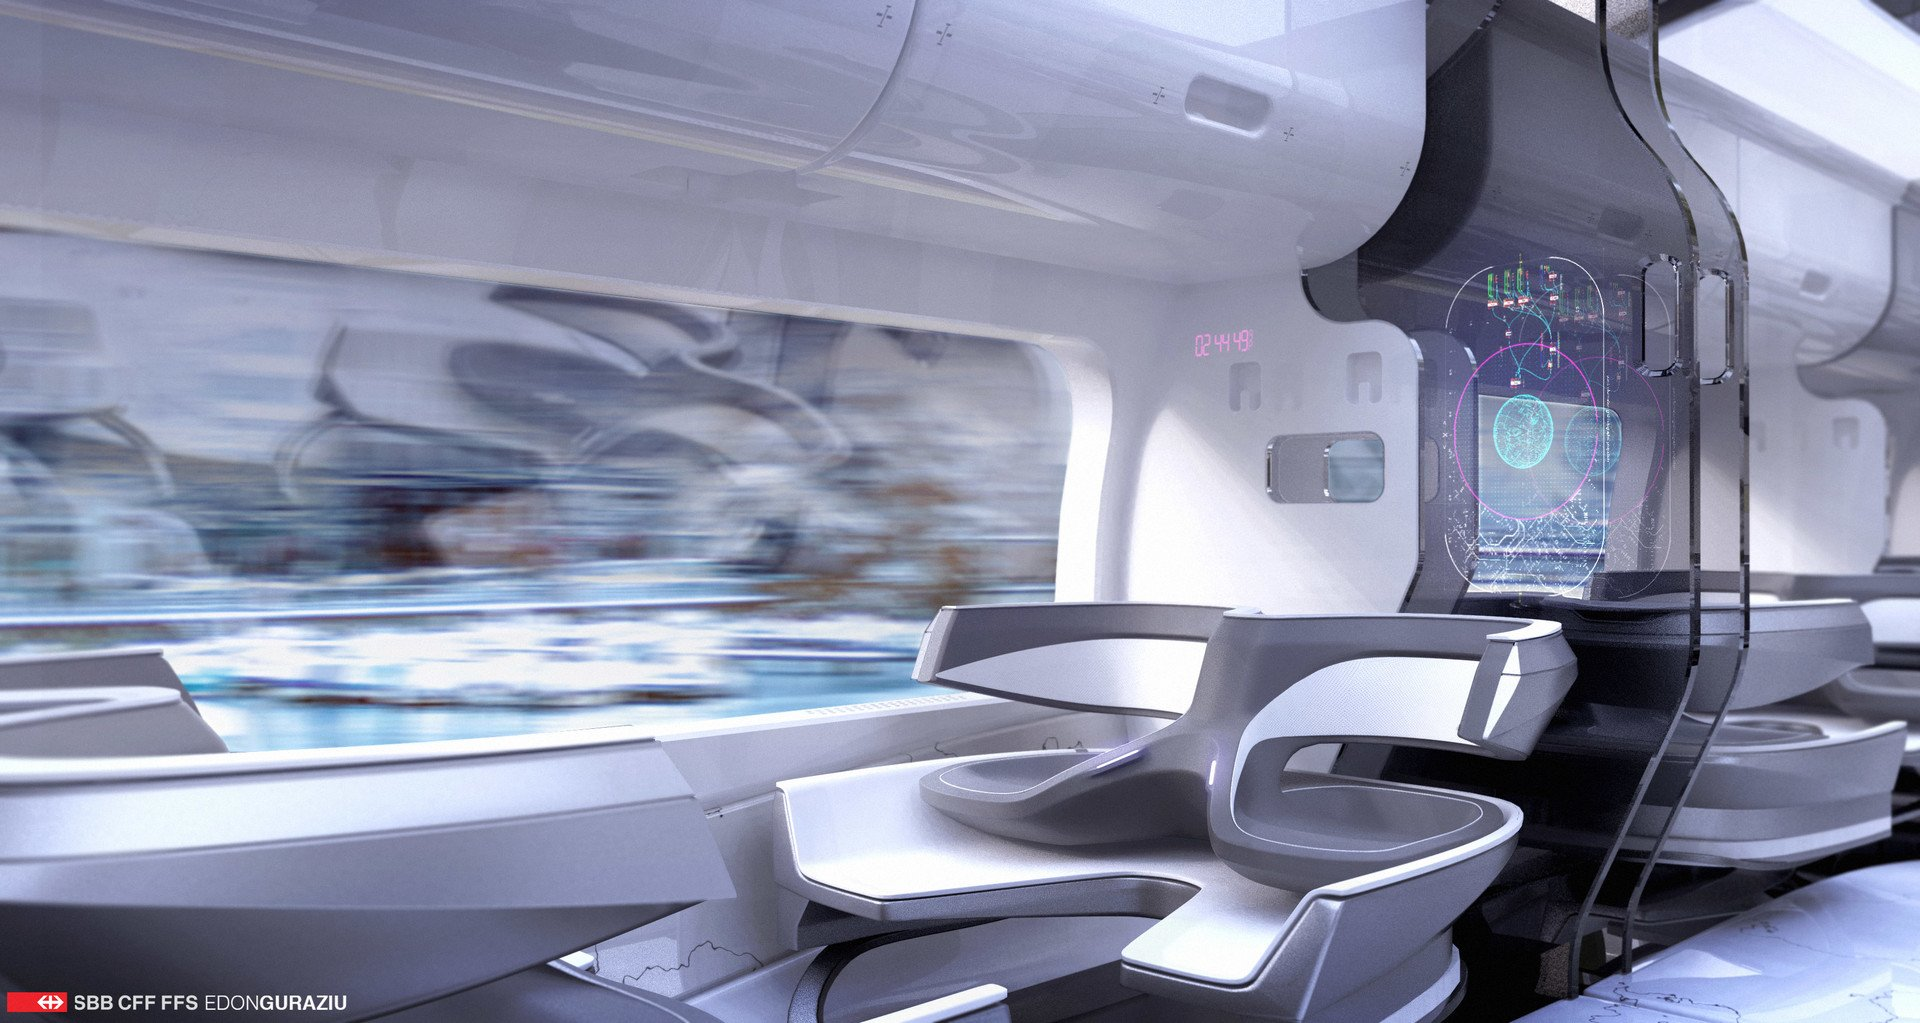 Train interior design